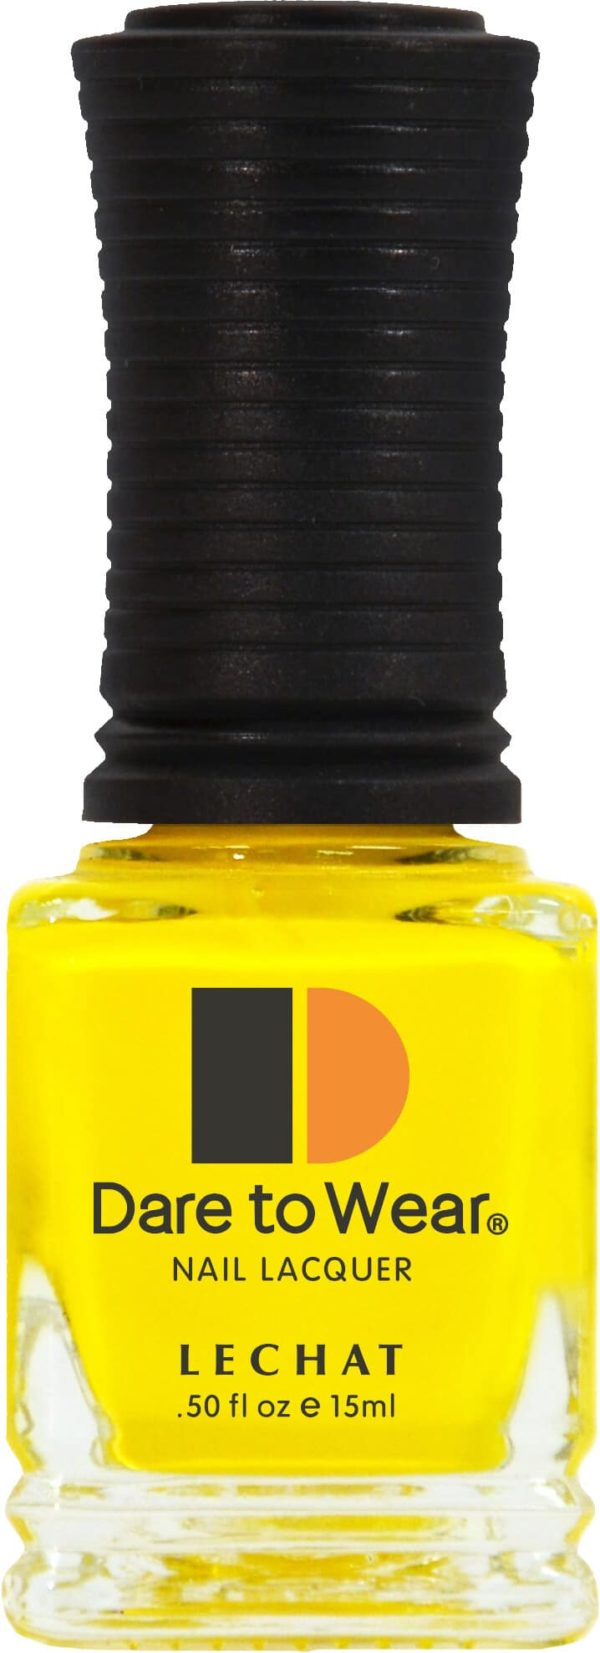 half fluid ounce bottle of yellow Dare to Wear lacquer.